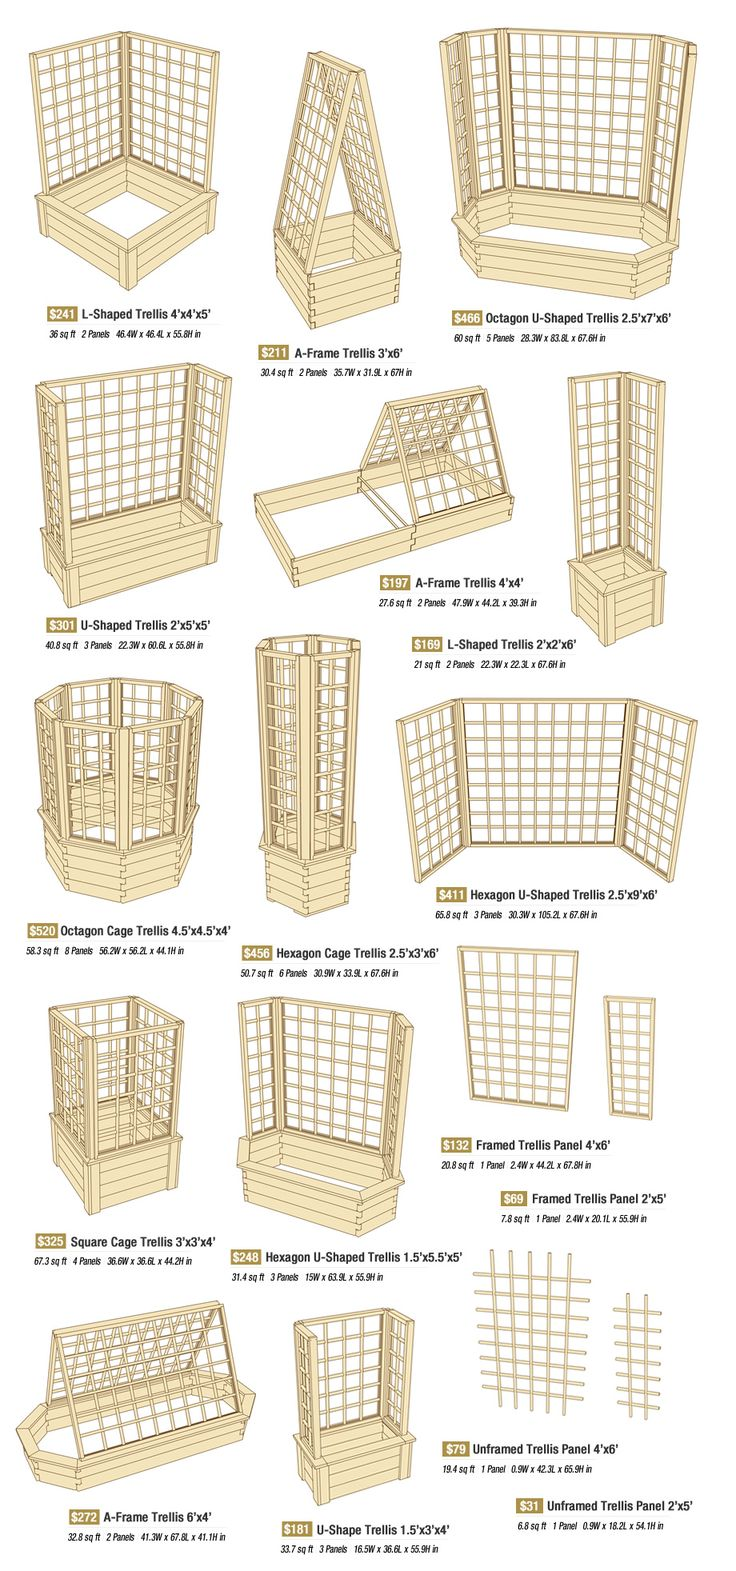 Best 25 trellis ideas ideas on pinterest for Trellis design ideas